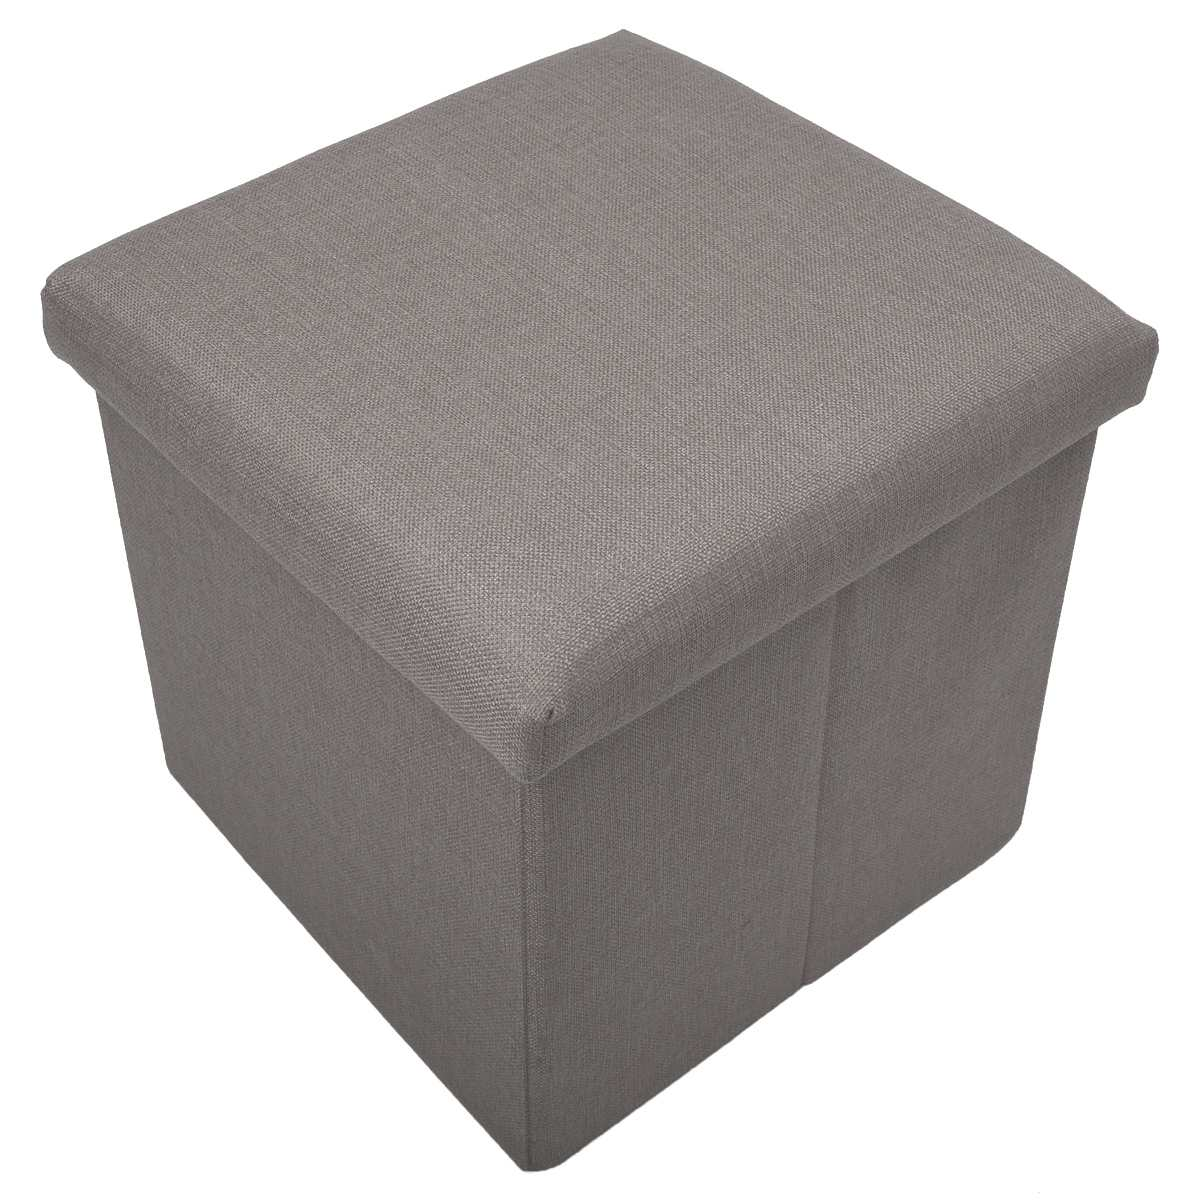 Super Us 40 35 57 Off Folding Storage Stool Chairs Lounge Shoes Bench Footstool Multifunction Storage Box Organizer Small Furniture Home Decoration In Short Links Chair Design For Home Short Linksinfo